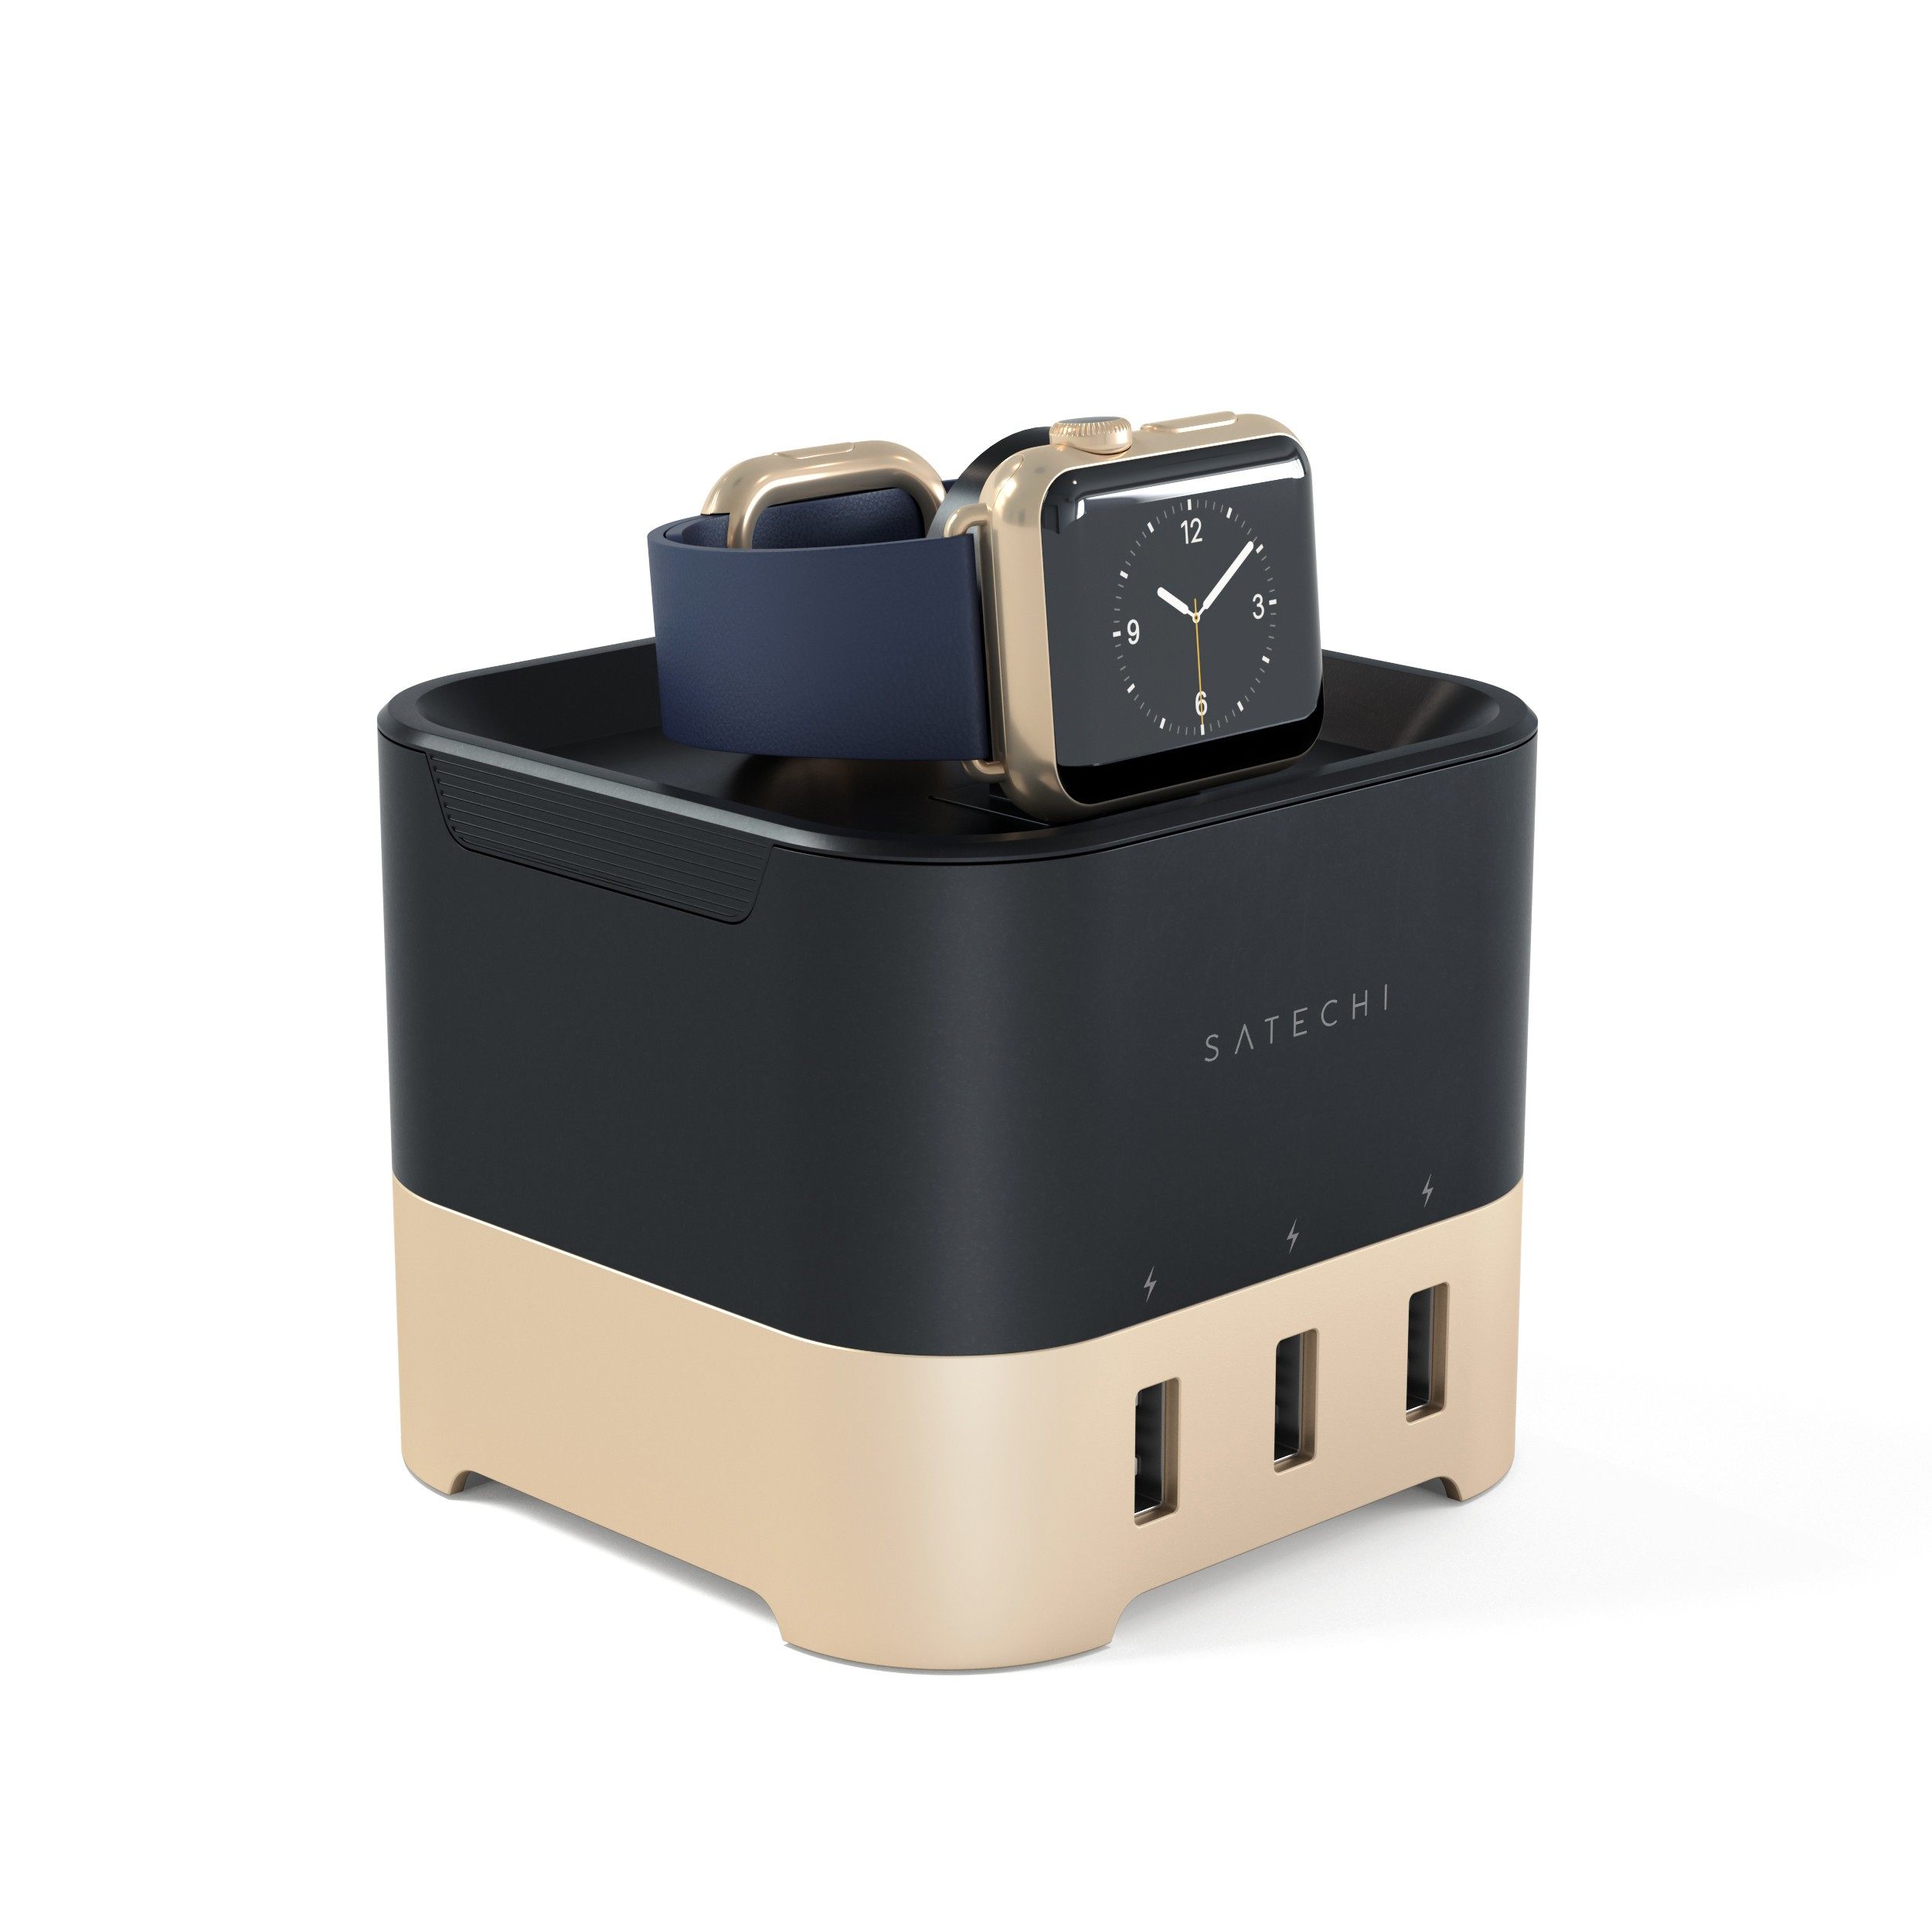 Satechi Smart Charging Stand for Apple Watch 1 & 2, Fitbit Blaze, and Smartphone (Gold) by